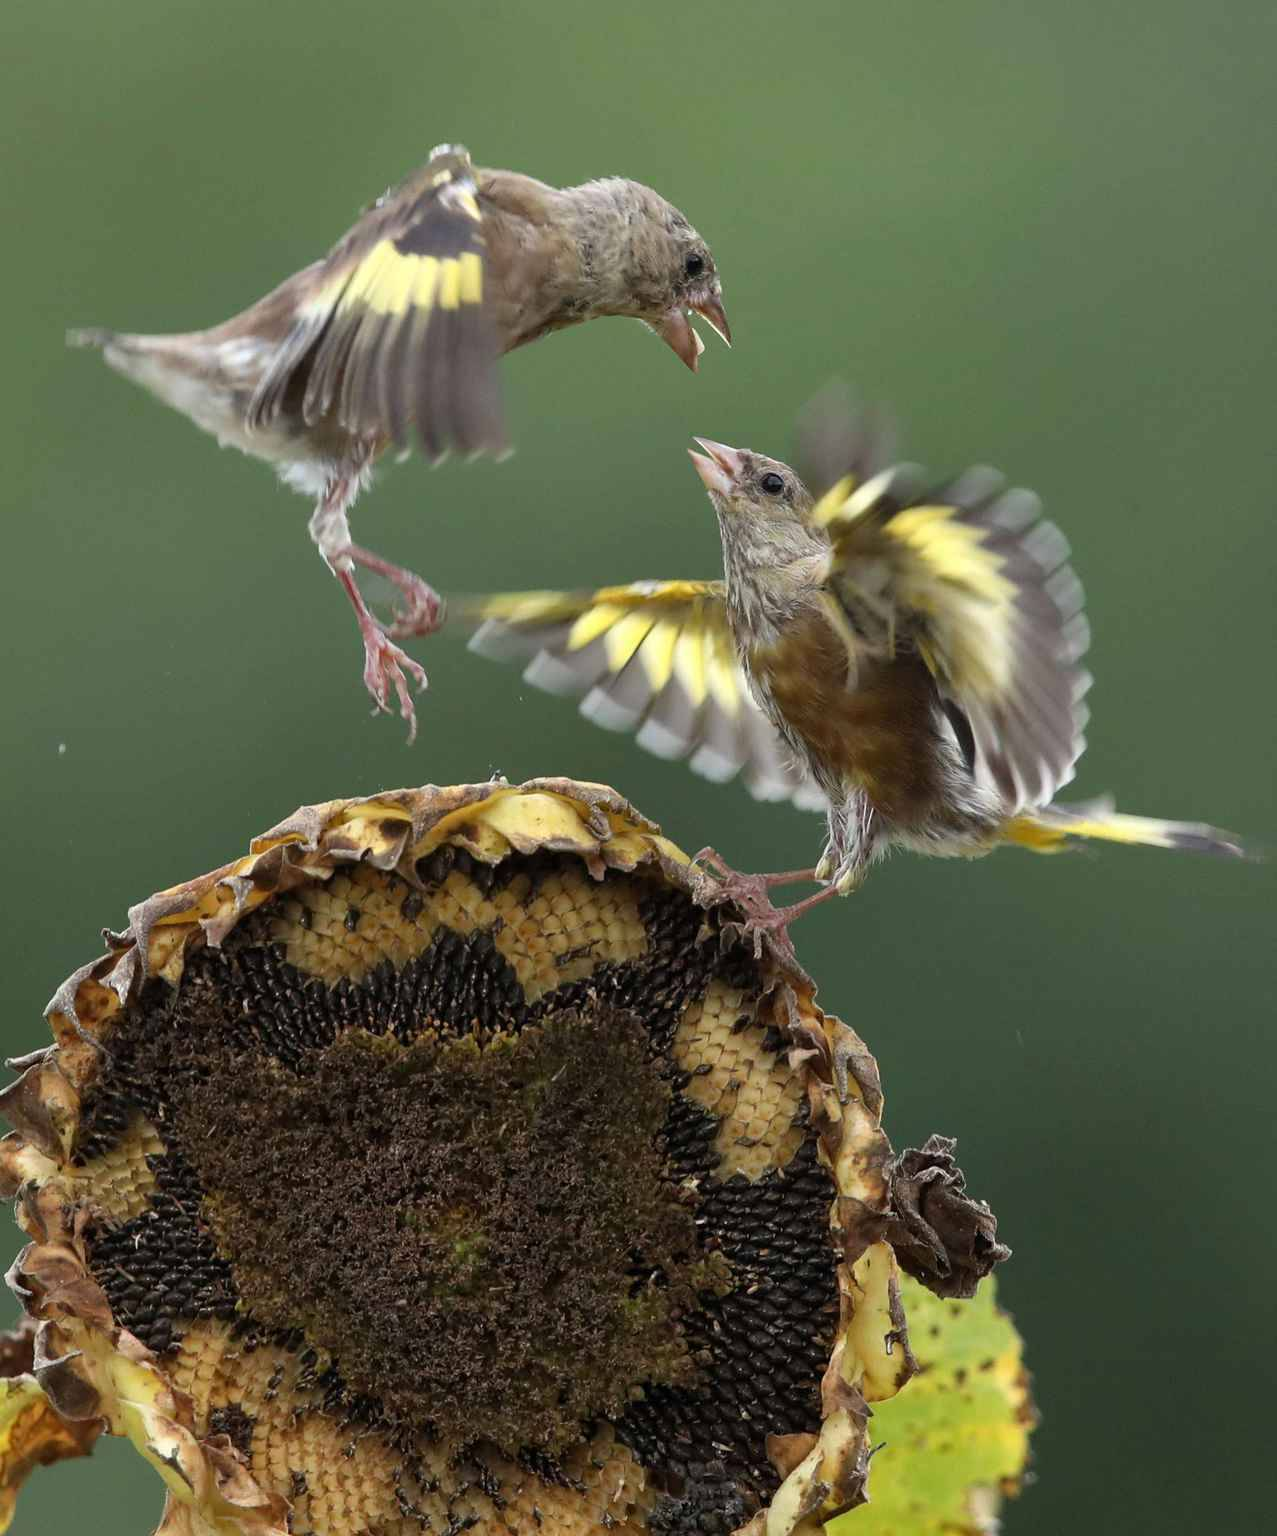 """Competition over food Two bellbirds look daggers at each other on the head of a sunflower while competing over its seeds at a field in the city of Chuncheon, northeast of Seoul, on Sept. 6, 2018, two days ahead of """"baengno."""" Translated in English as """"White Dew,"""" baengno is one of the 24 seasonal divisions of the lunar calendar that marks the onset of dew."""